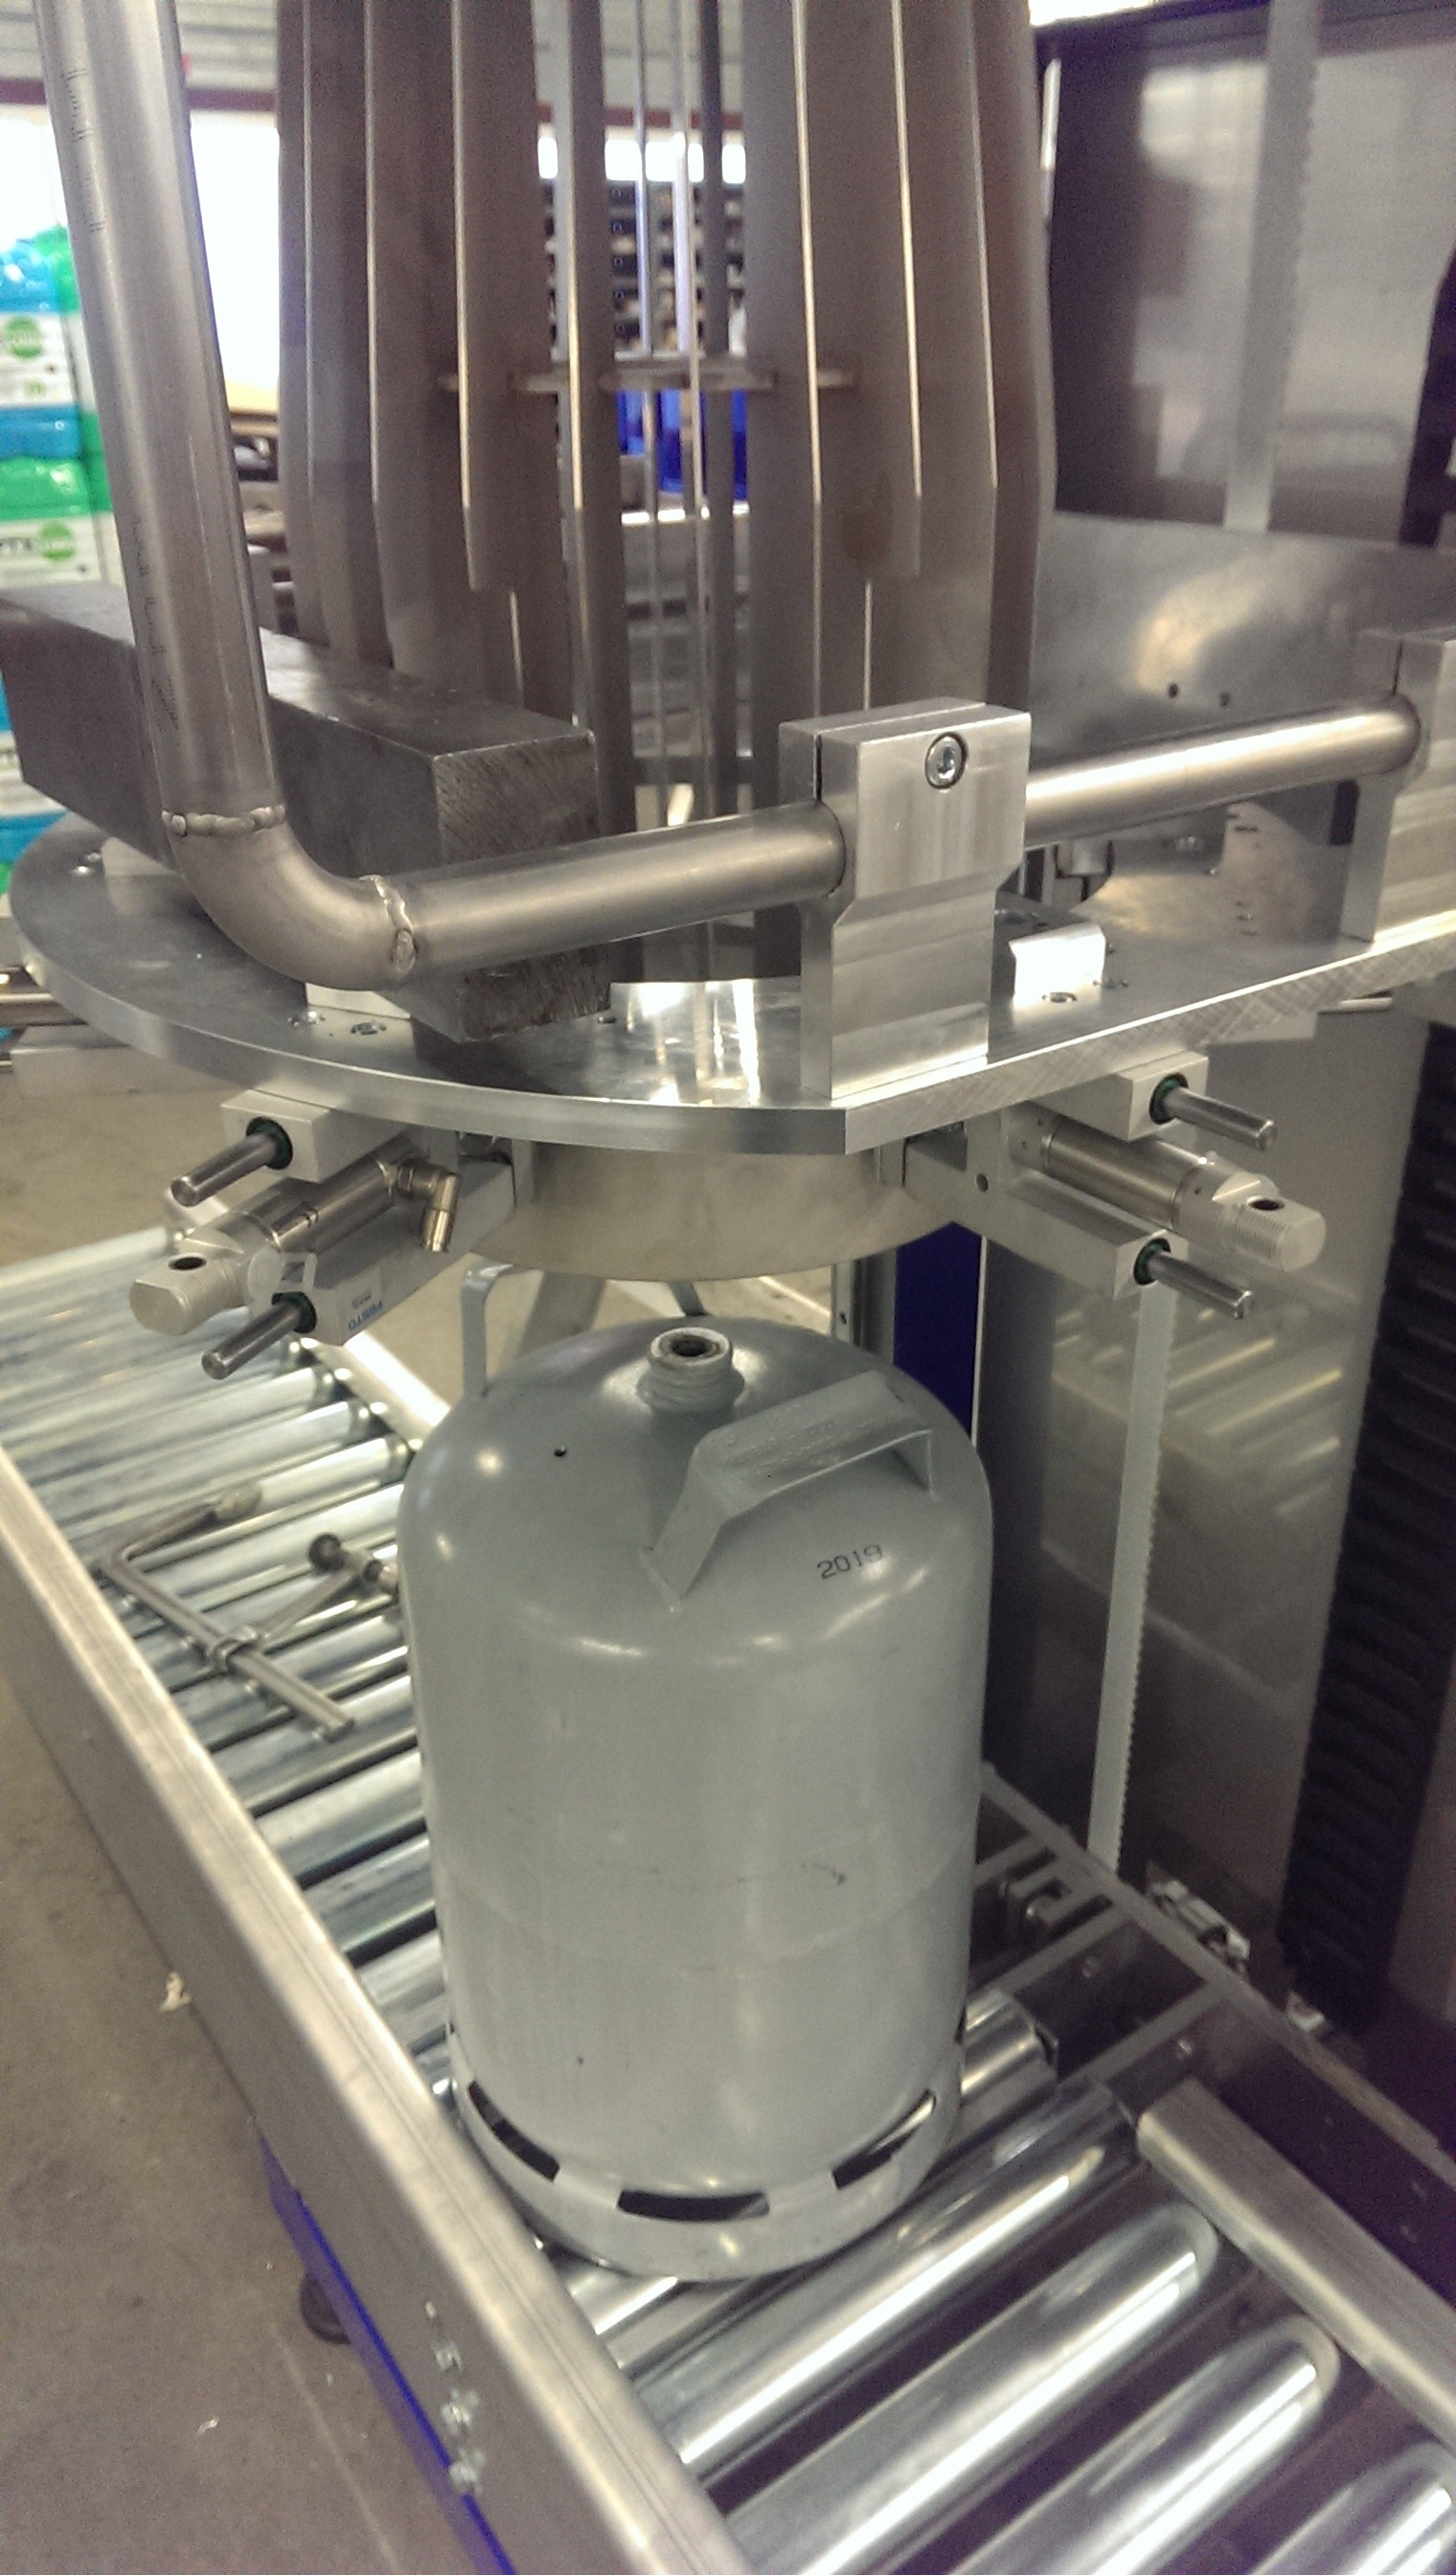 Semi automatic sleever for gas bottles in progress